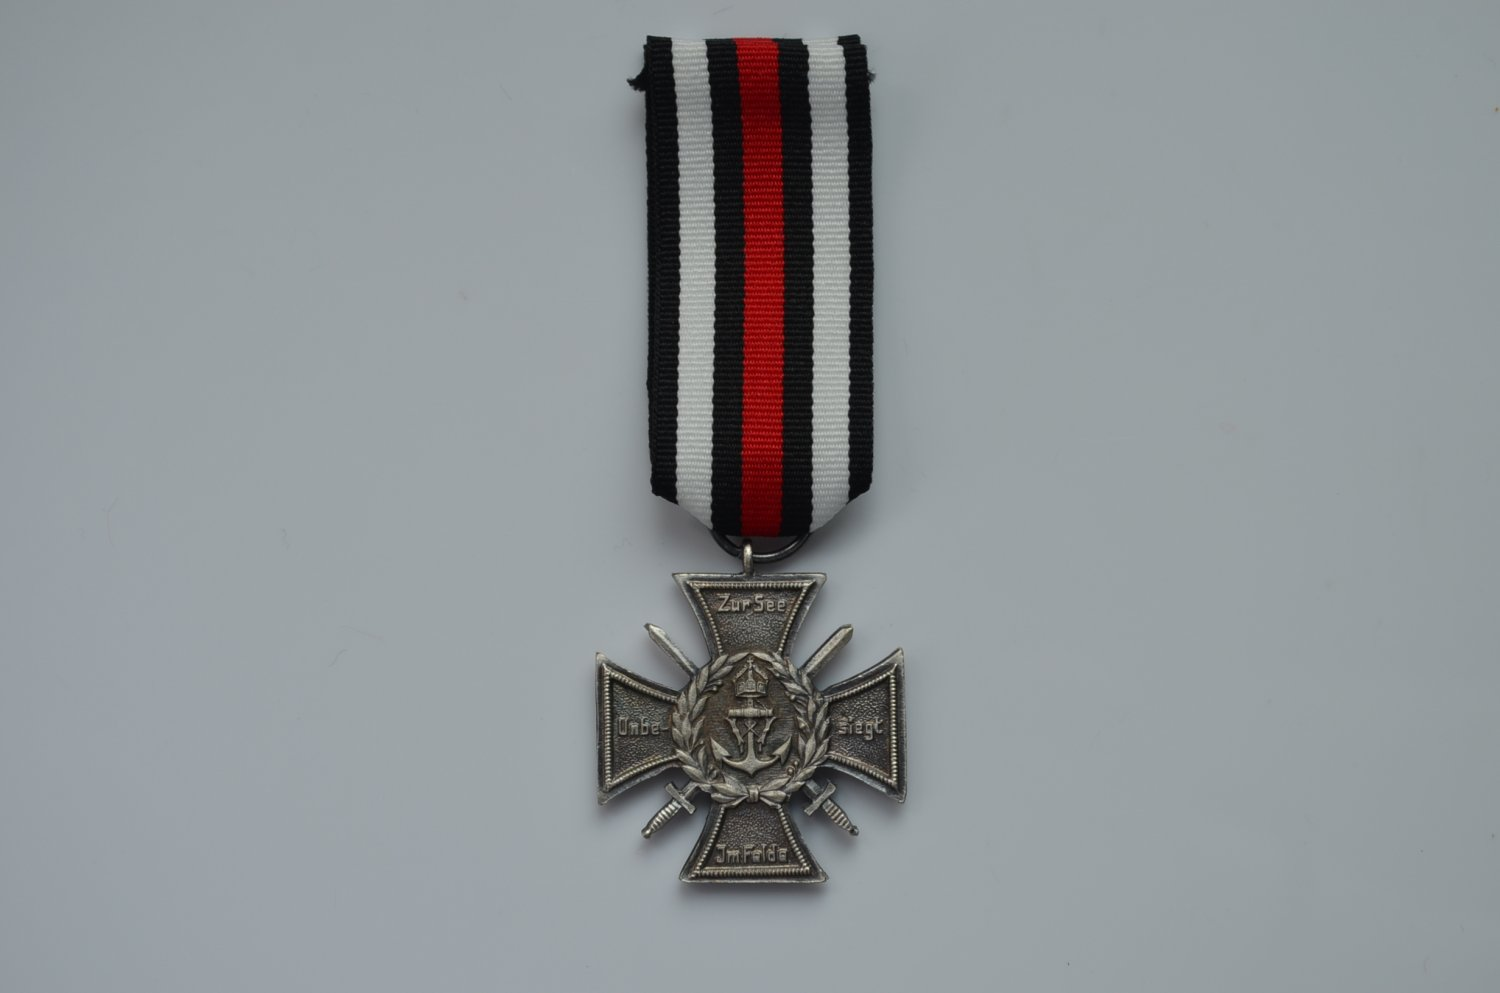 WWI German silver Imperial Naval Corps Flanders Cross